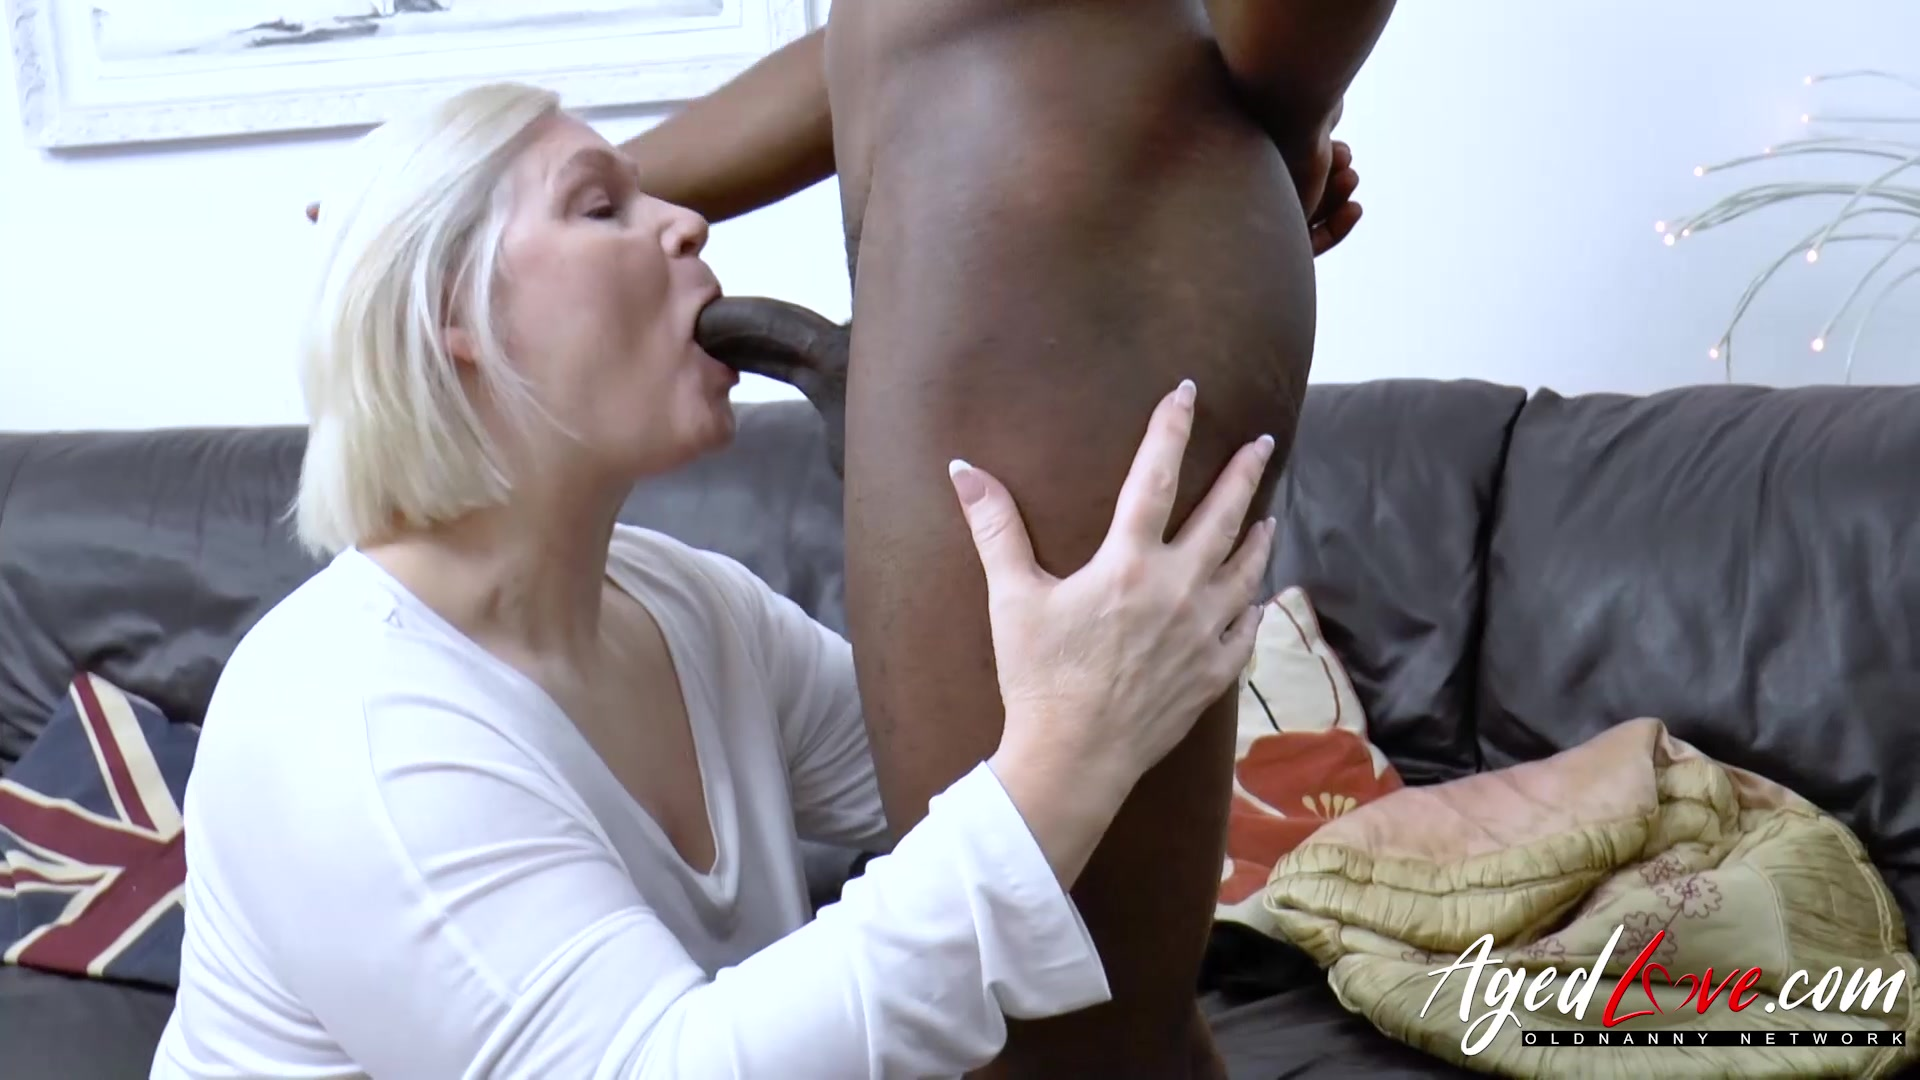 Agedlove lacey star interracial hardcore anal 10